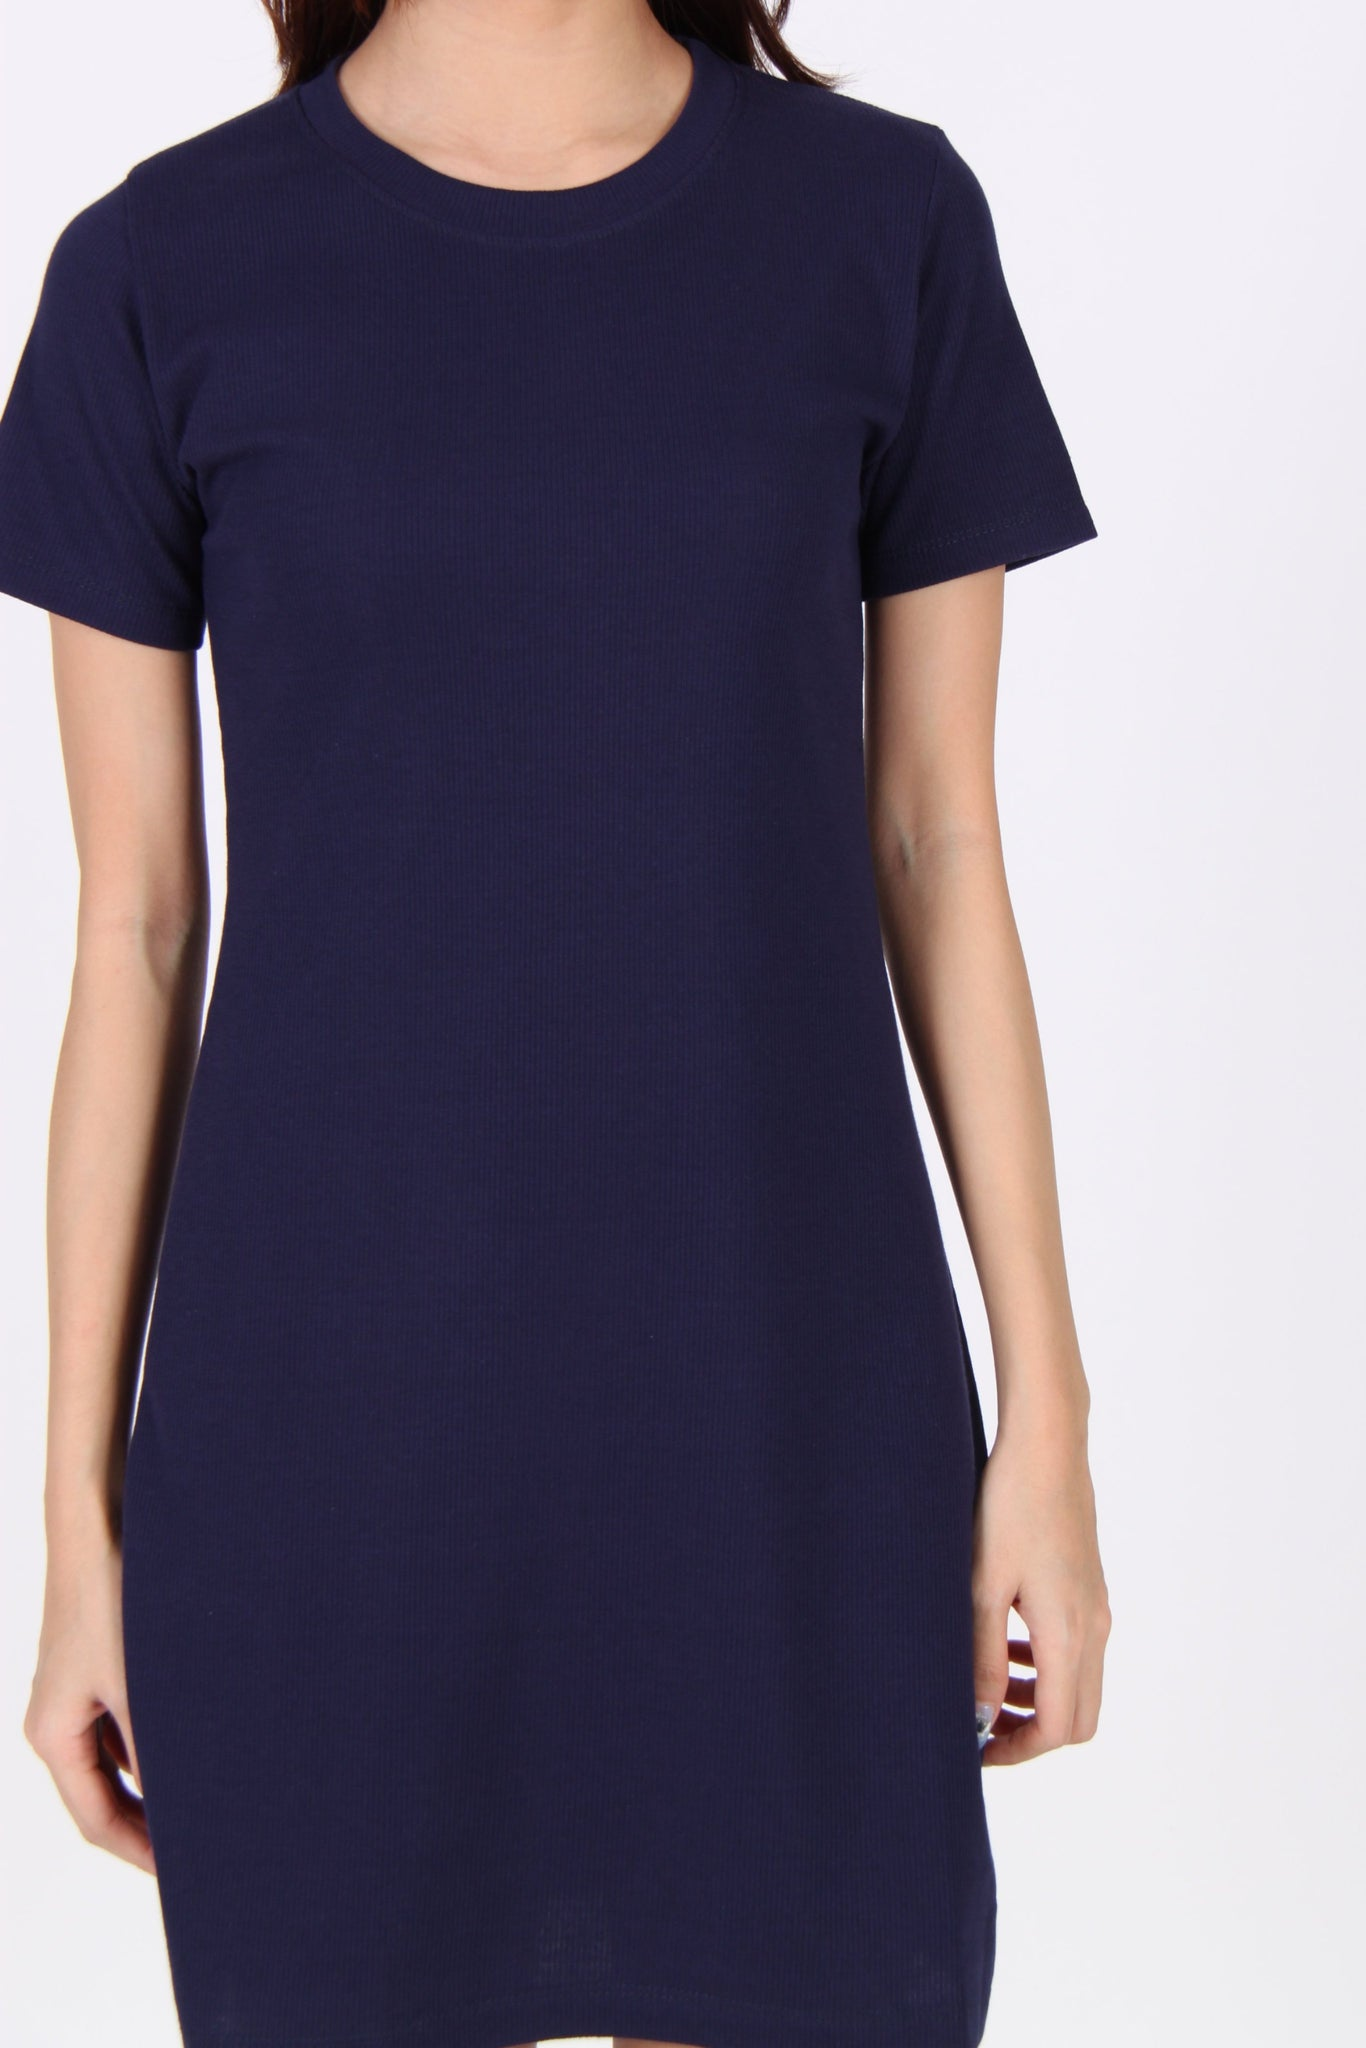 Basic Everyday Comfy Tee Dress in Navy Blue